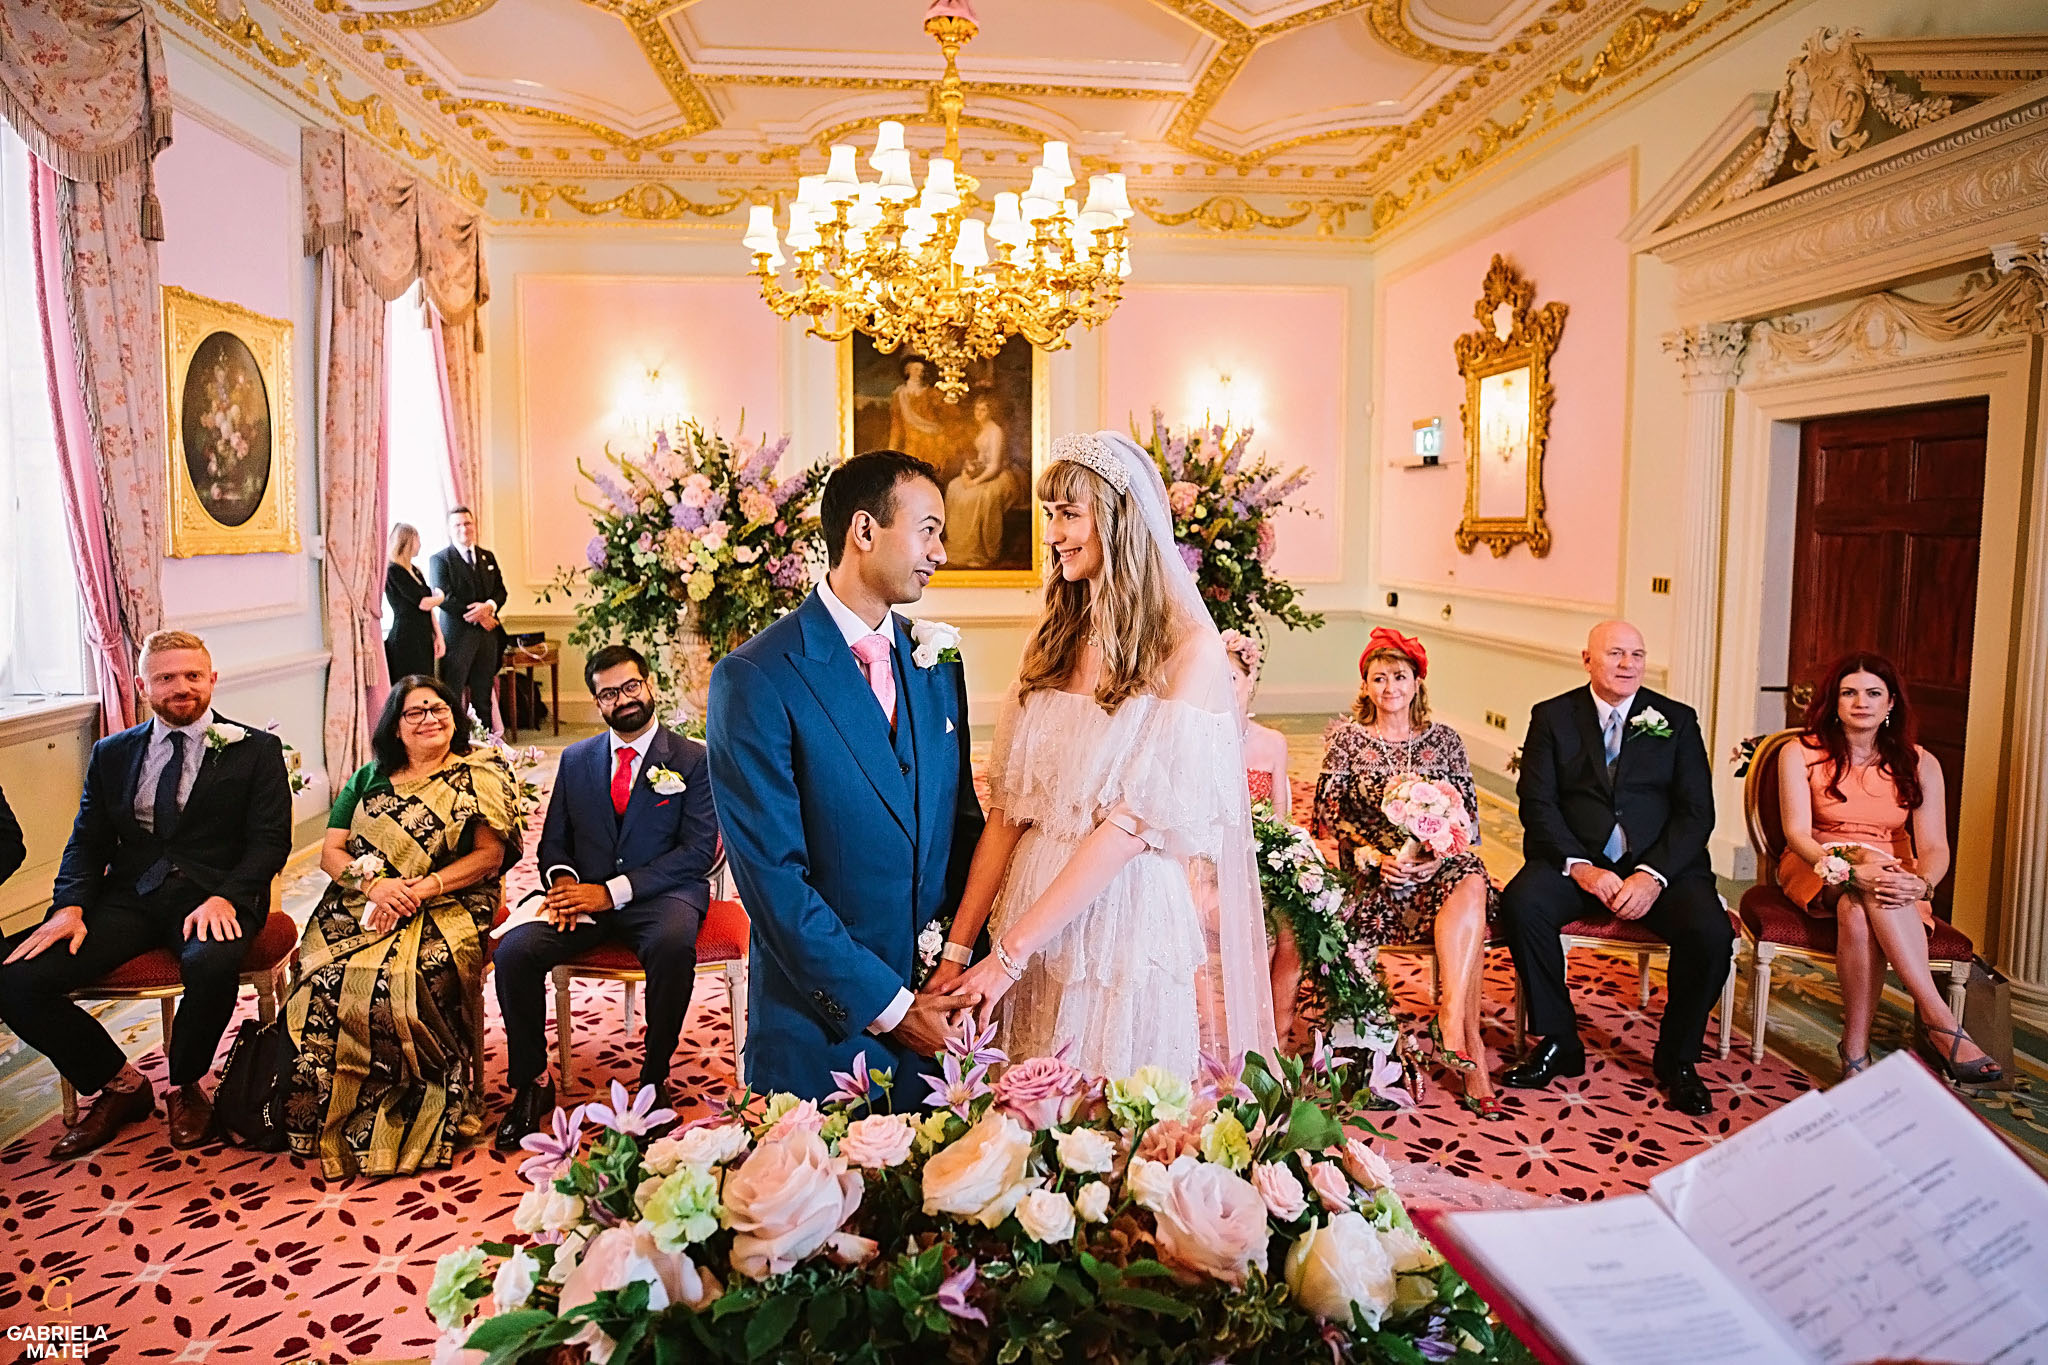 Bride and Groom holding hands and looking into each other's eyes during civil wedding at the Ritz hotel London